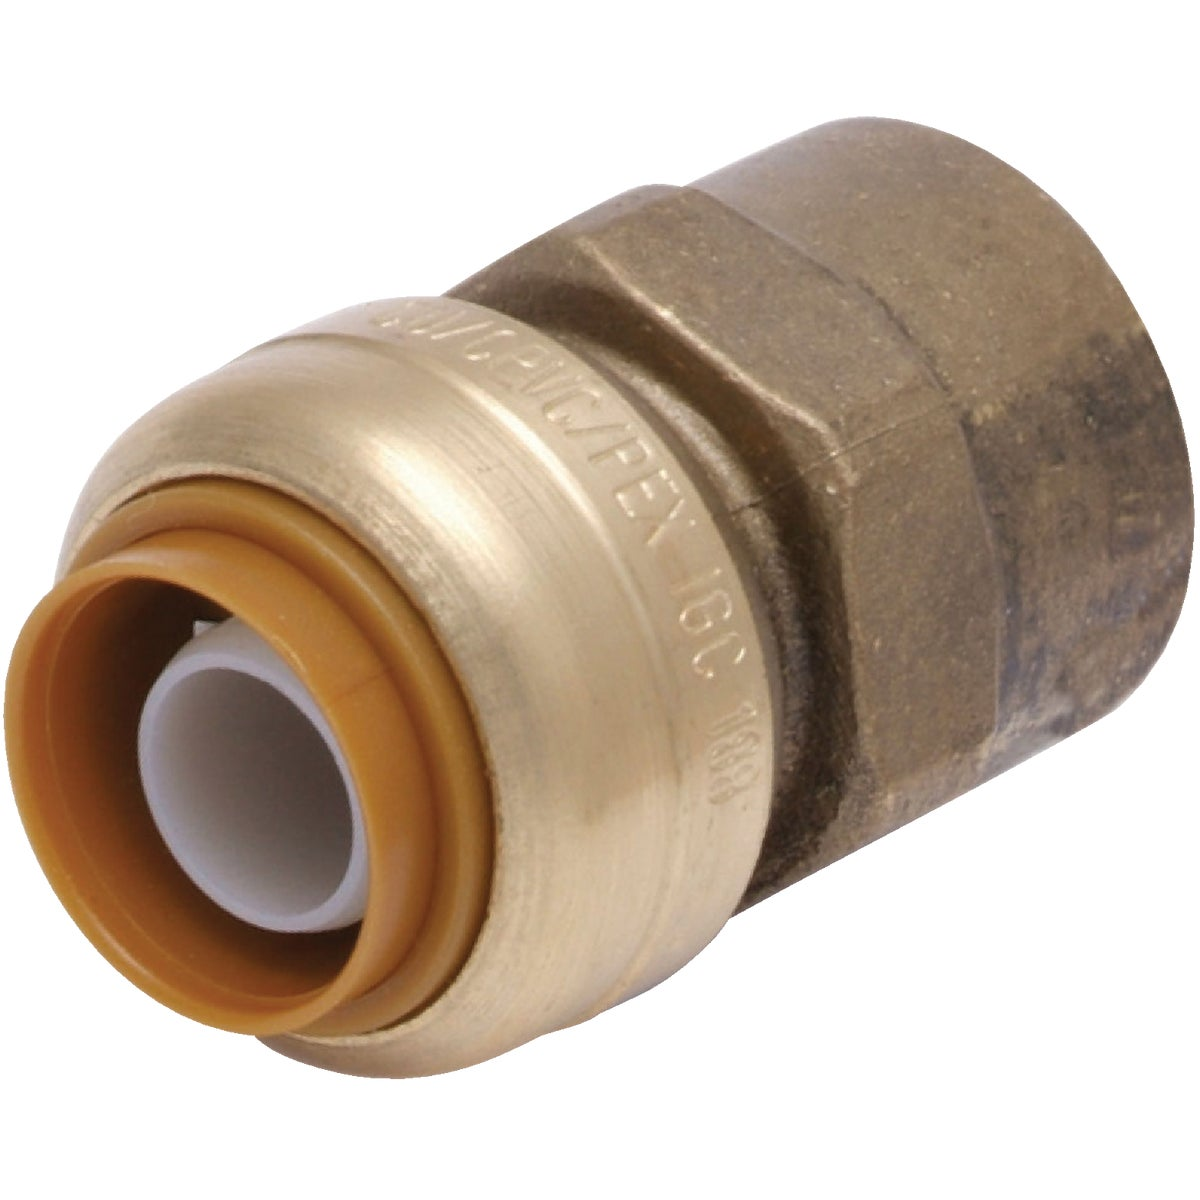 "3/4"" FIP PUSH ADAPTER - U088LFA by Cash Acme"